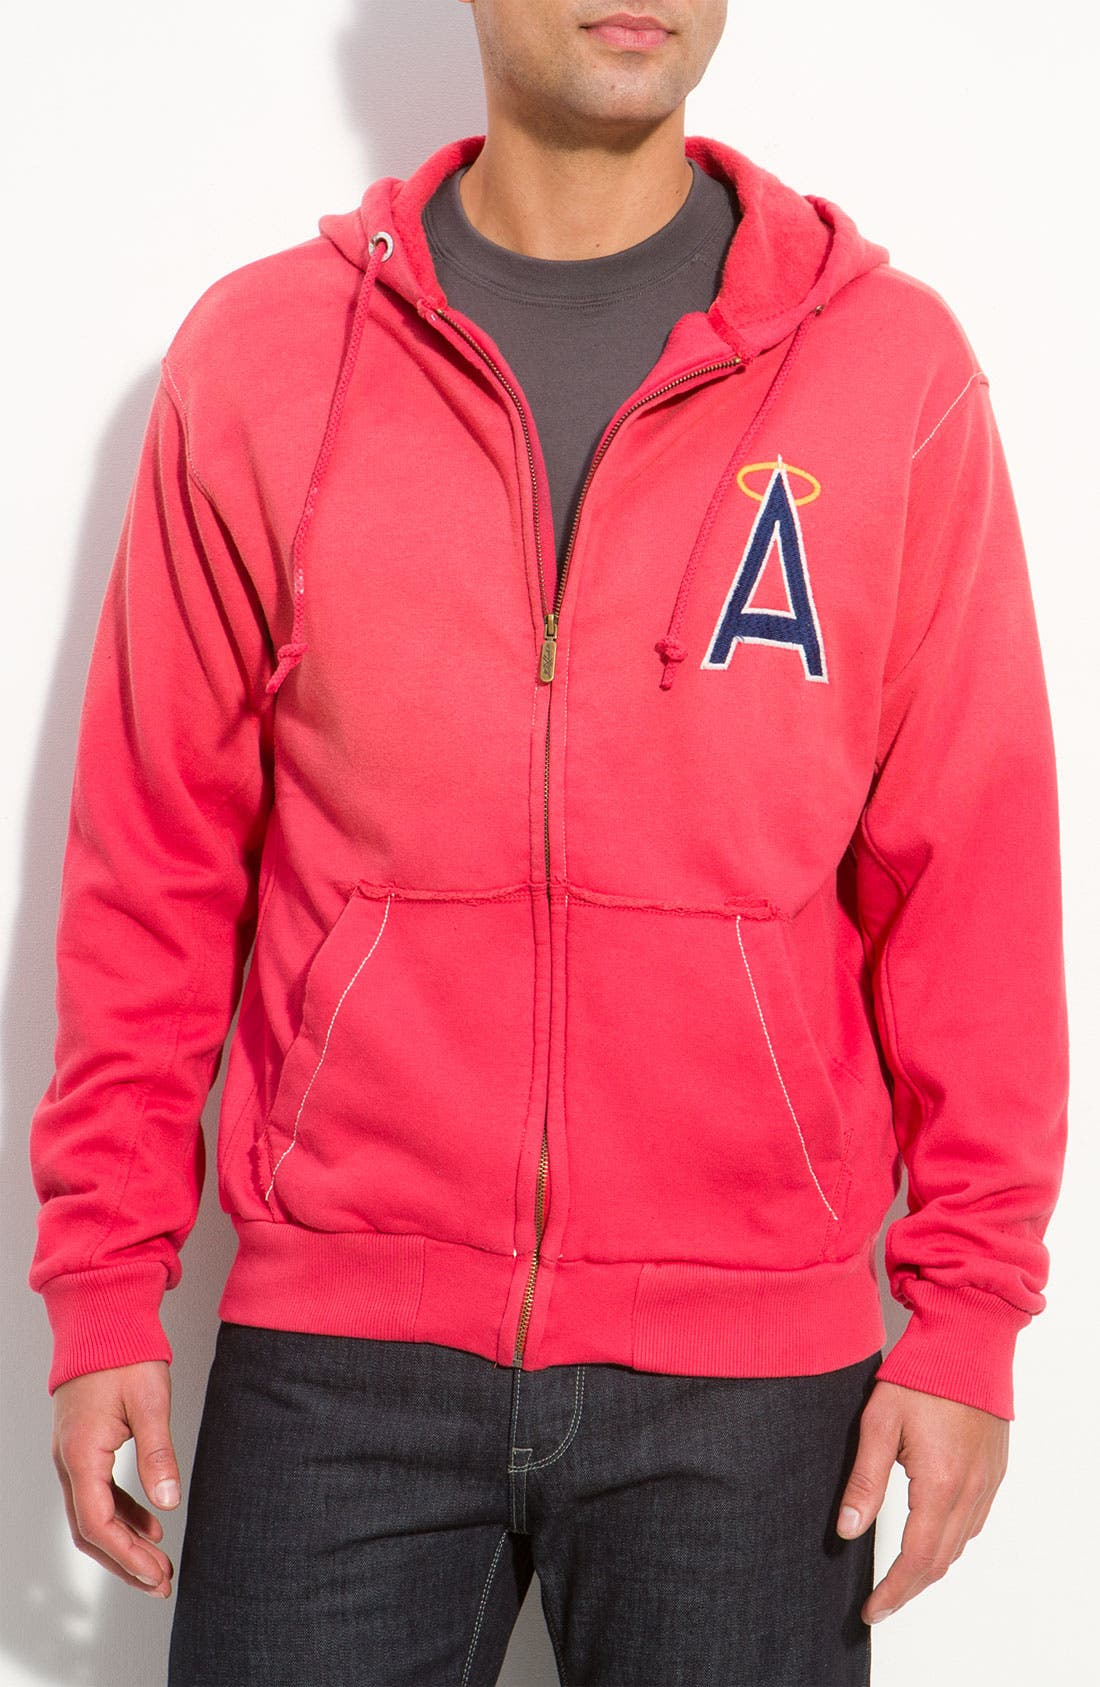 Alternate Image 1 Selected - Red Jacket 'Angels' Hoodie